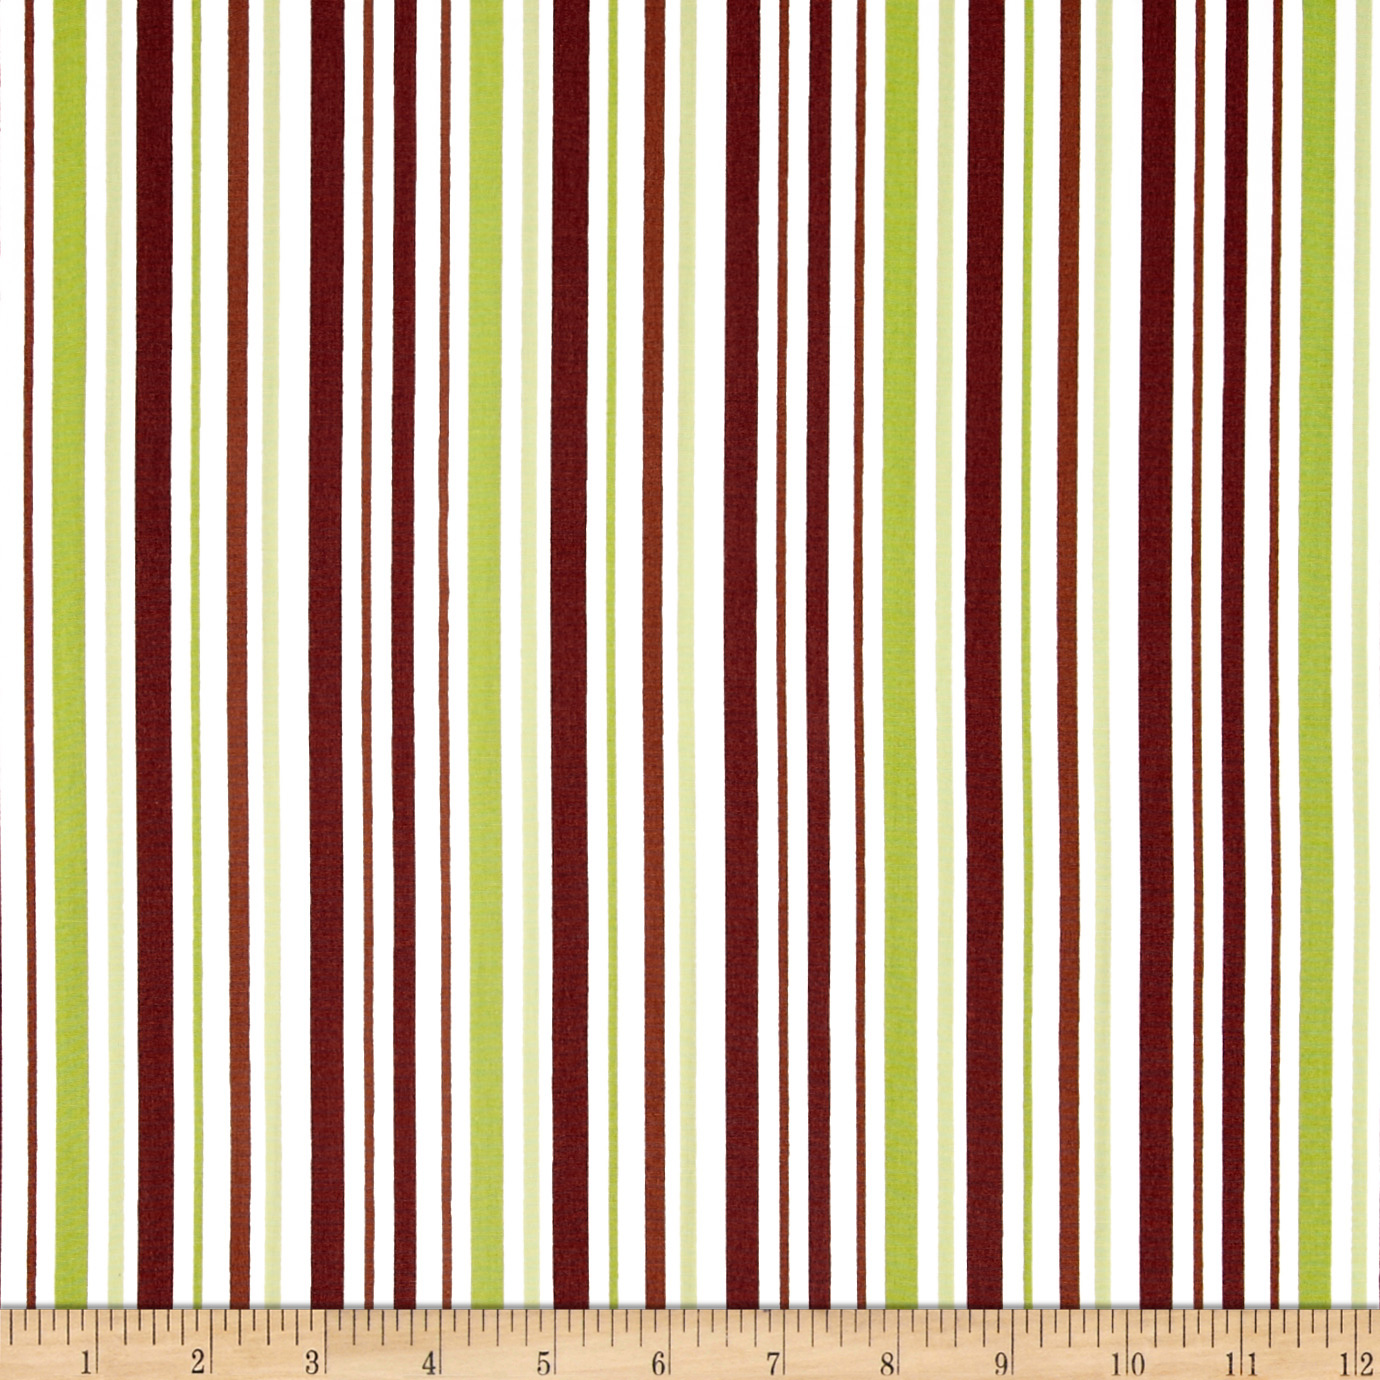 Pimatex Basics Stripe Pistachio Fabric